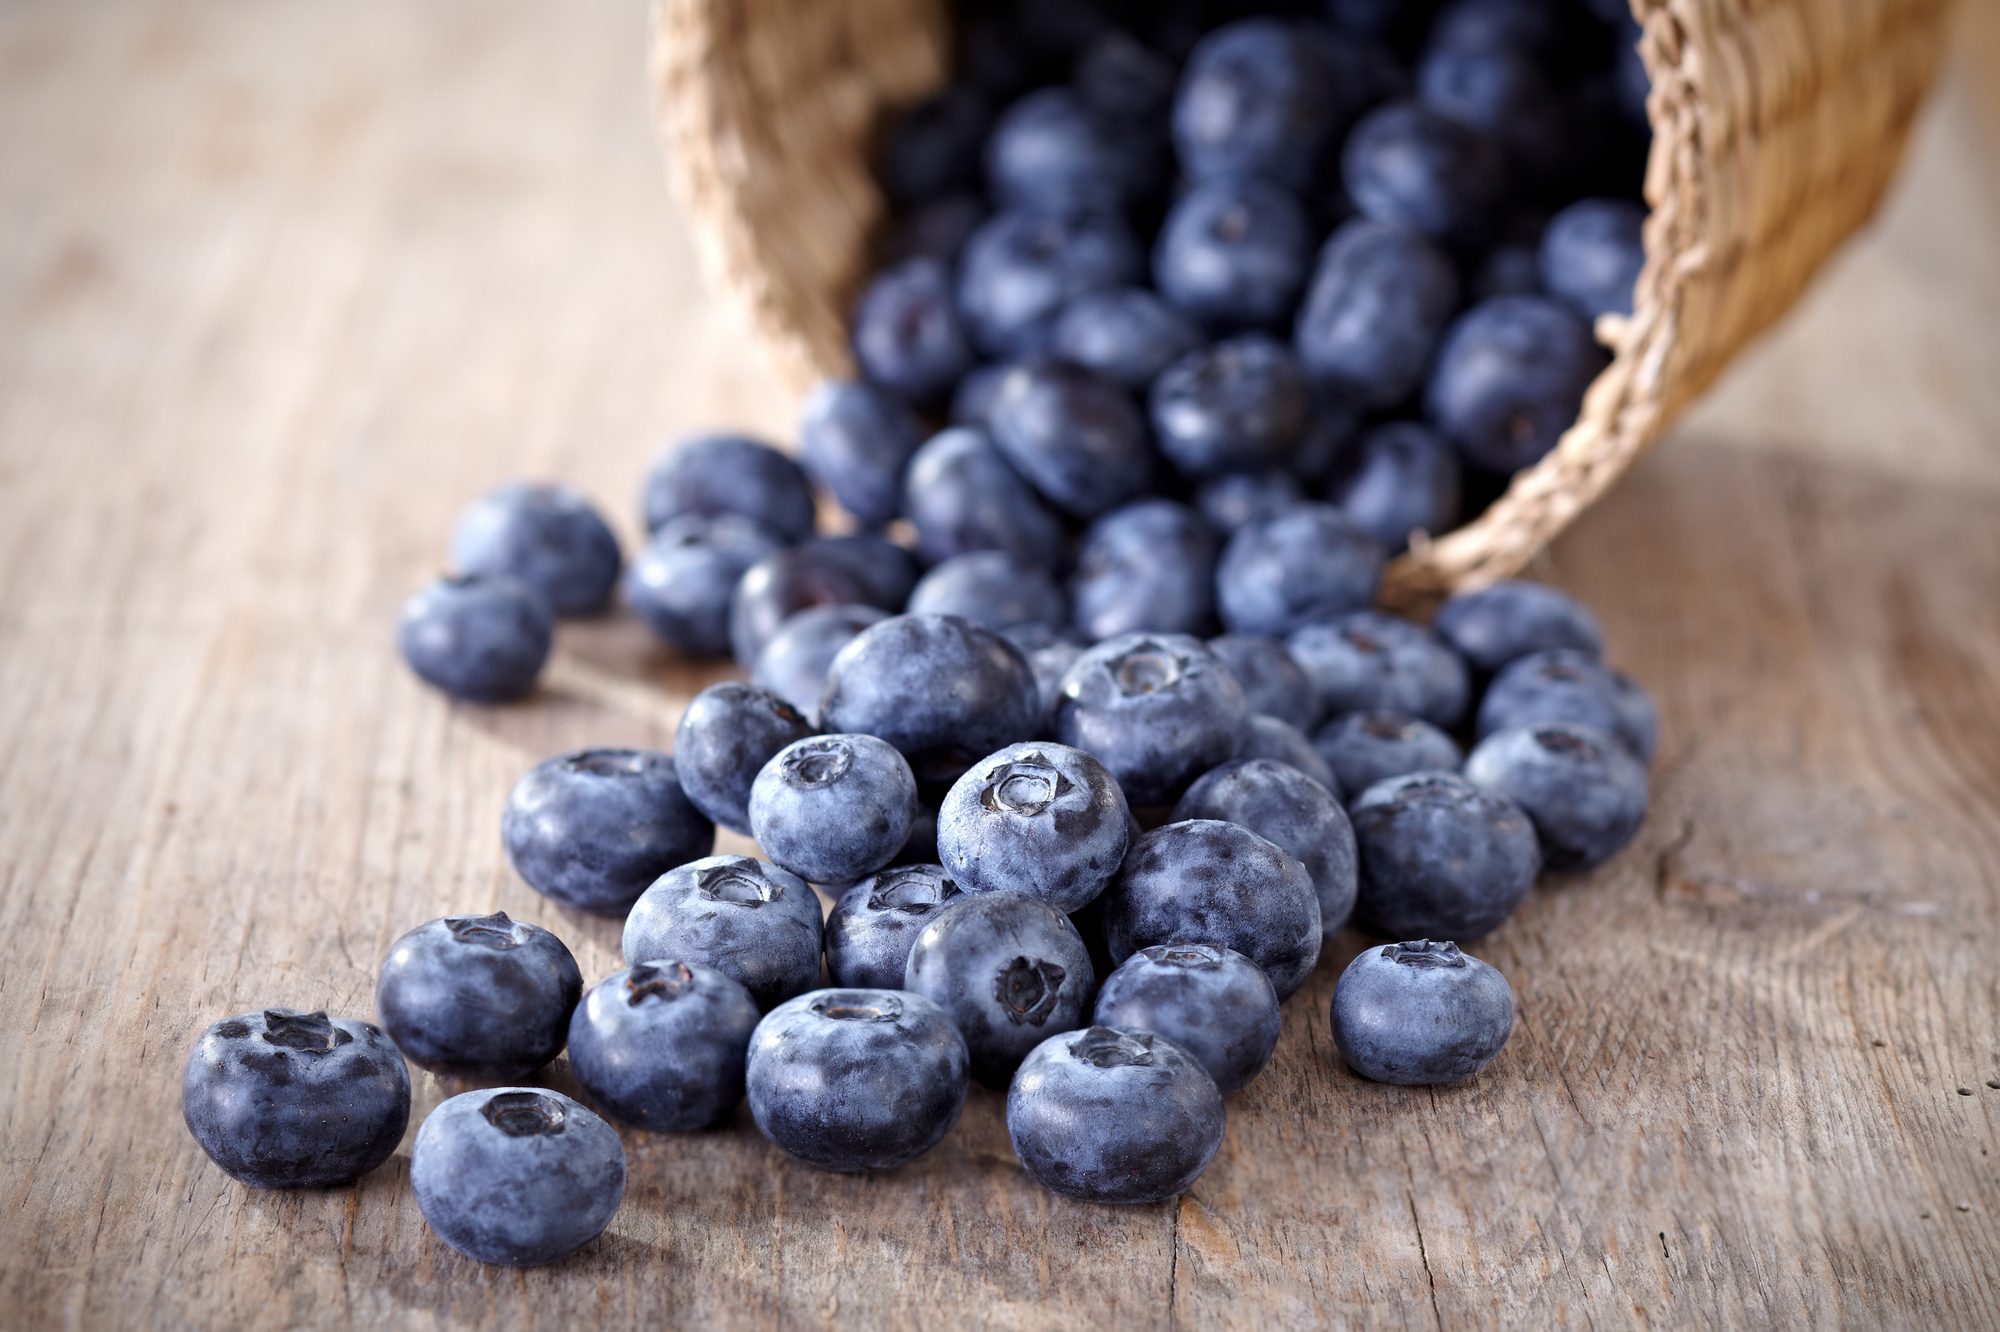 Blueberries - Histamine Intolerance. An Overlooked Cause For Your Nagging Symptoms?